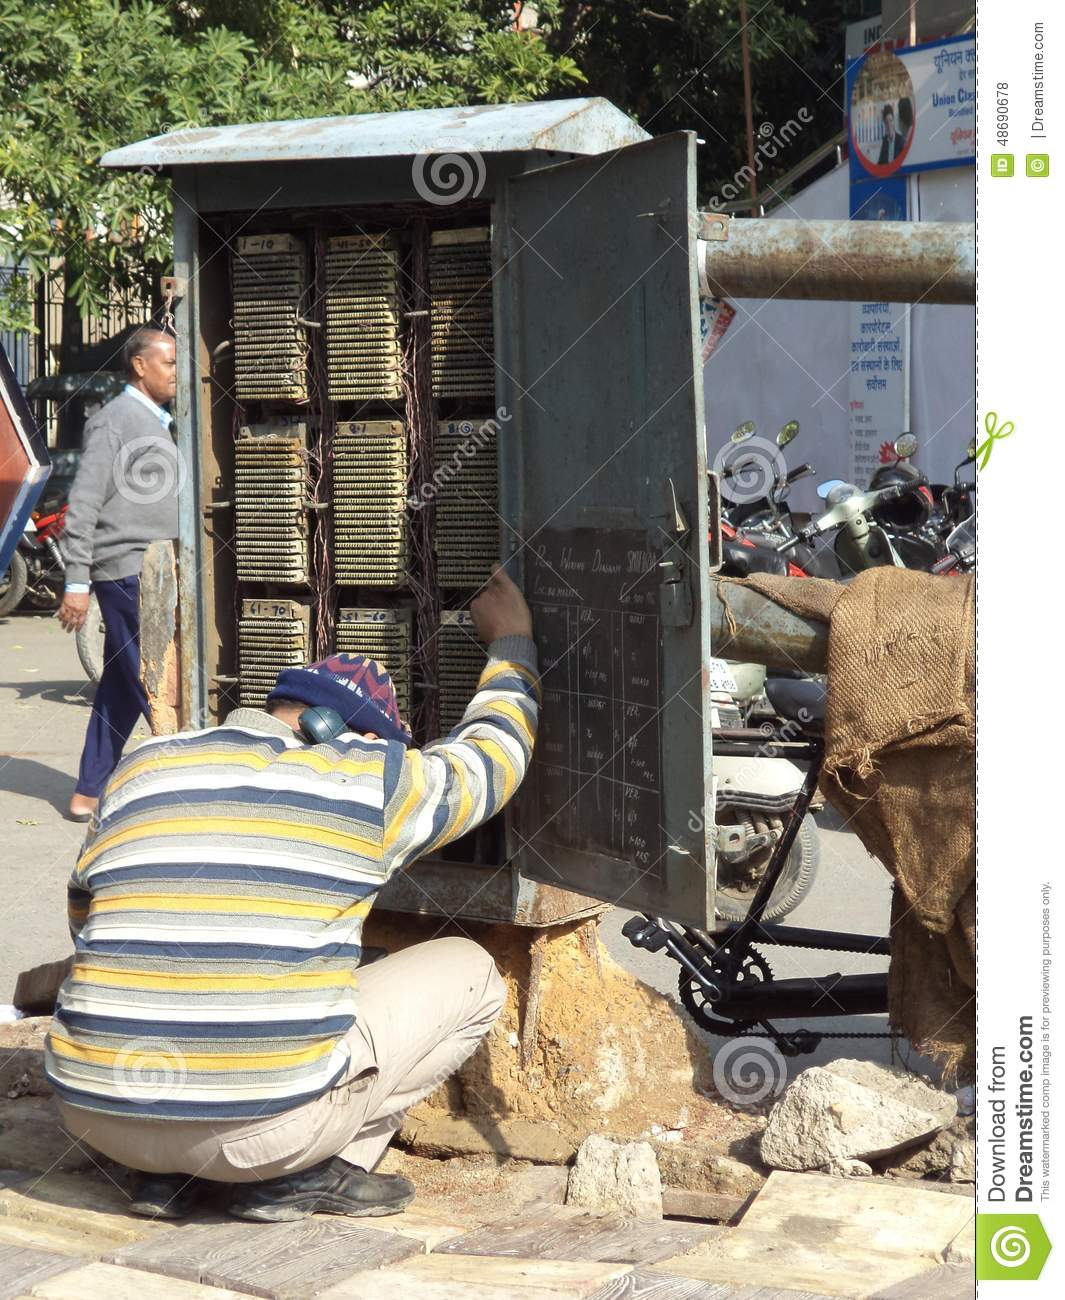 Outdoor Telephone Wiring Box Manual Of Diagram Lineman Checking Junction New Delhi India Editorial Rh Dreamstime Com